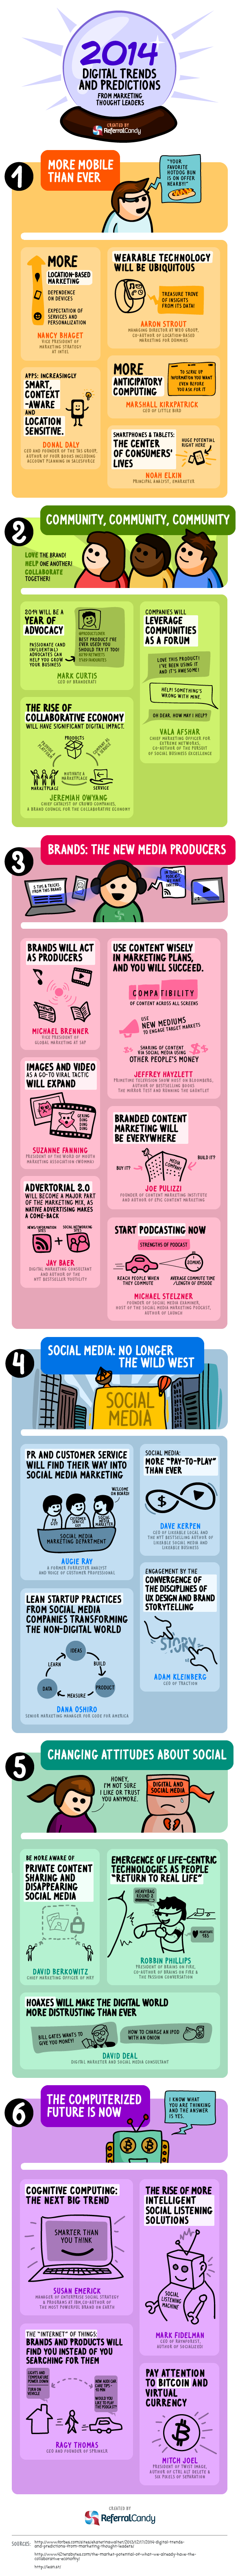 Infographie 86 - 2014-digital-trends-predictions-marketing-infographic